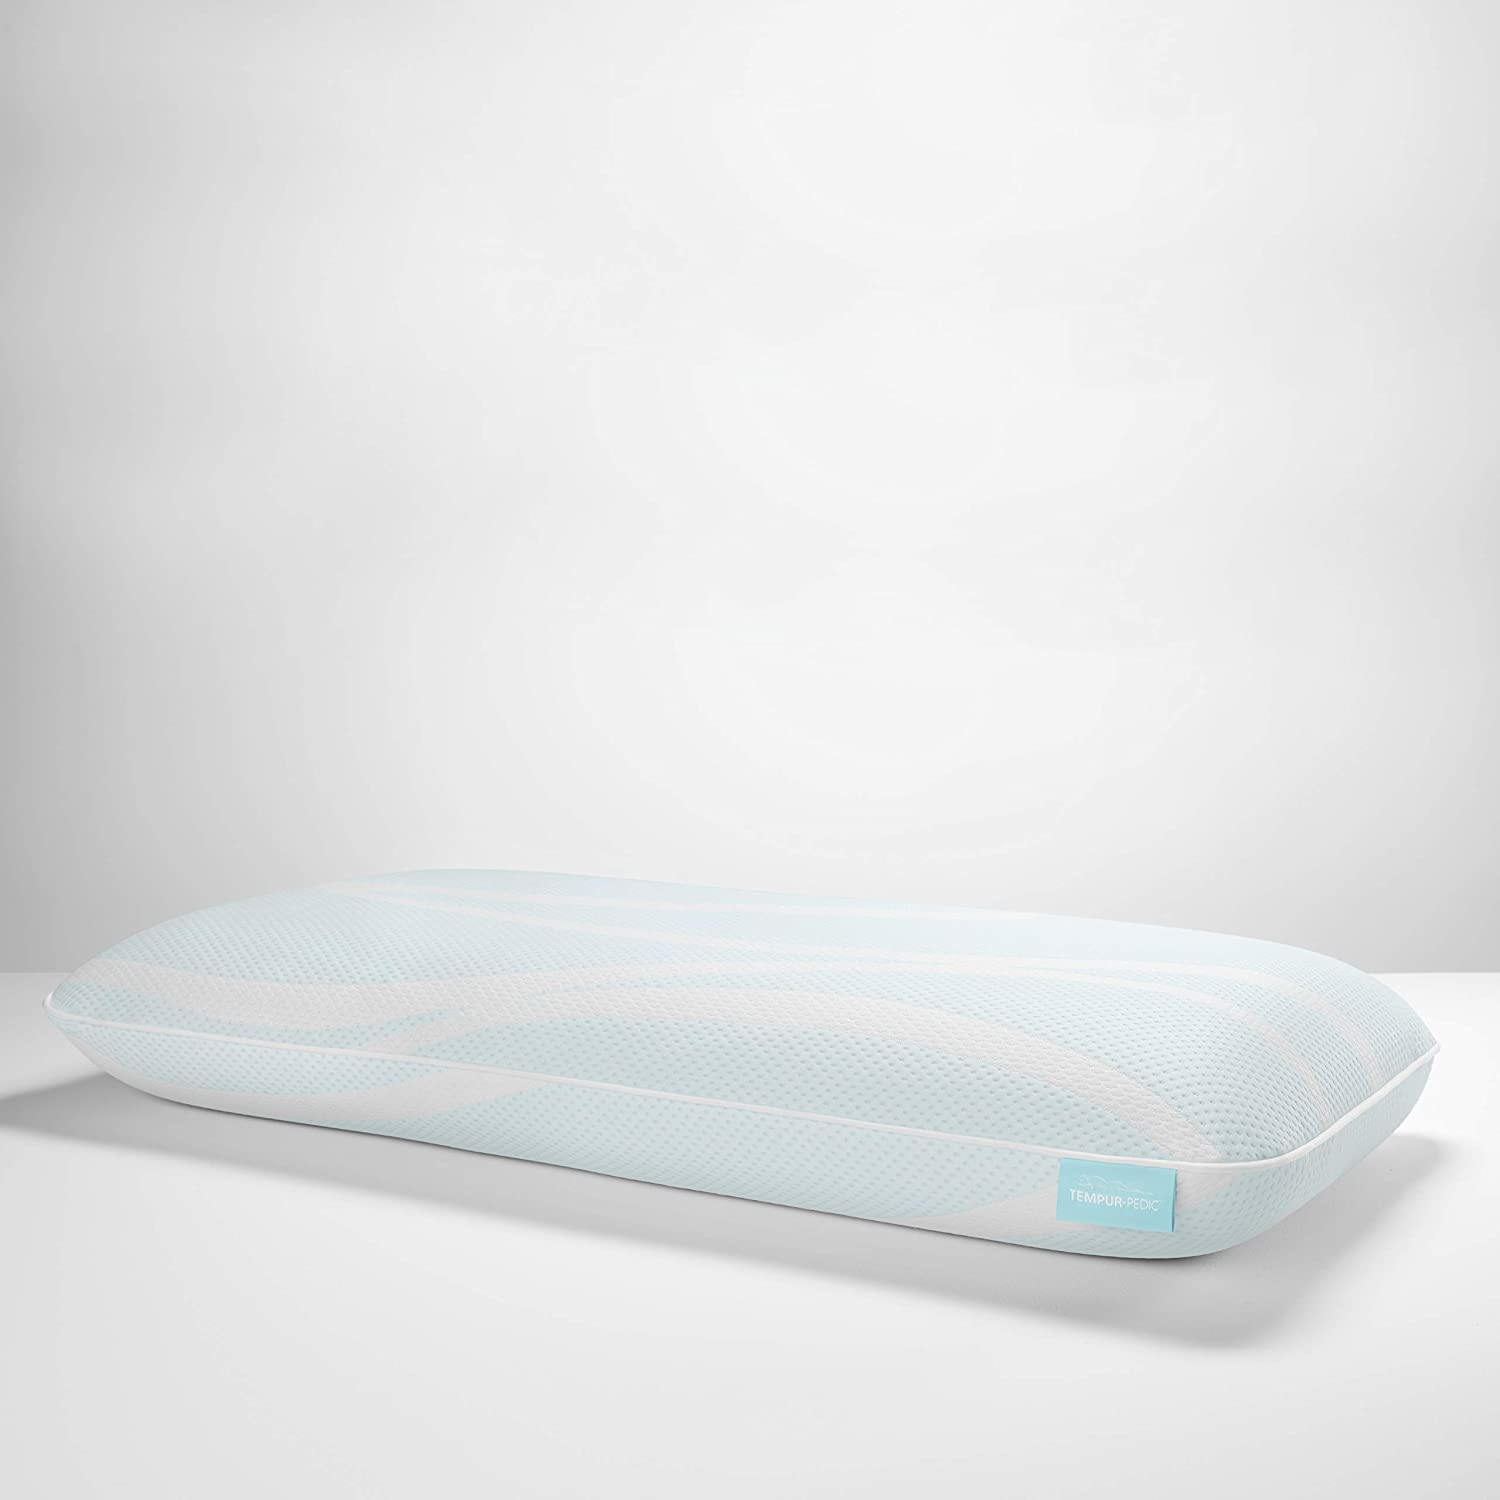 TEMPUR-PEDIC TEMPUR-Breeze ProLo King Size Pillow, White